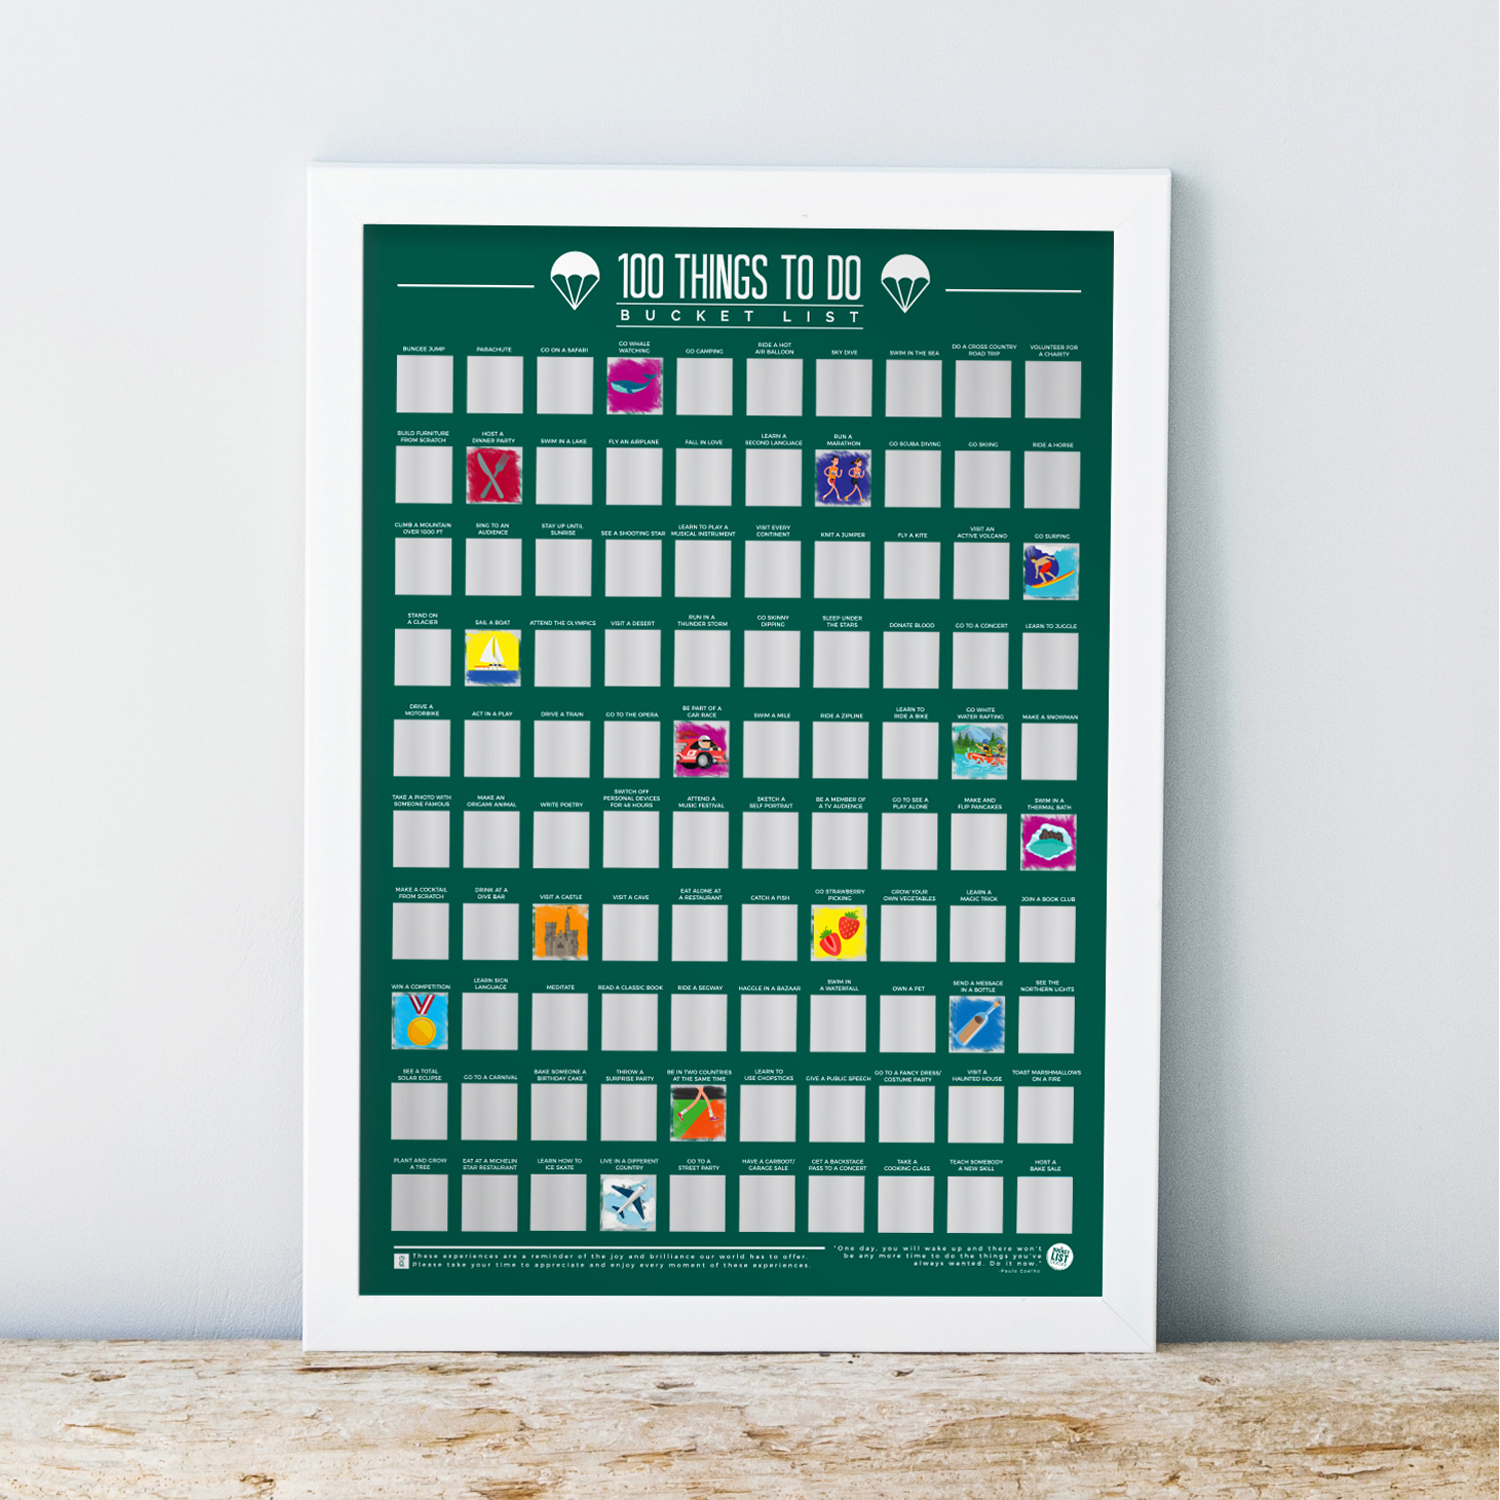 100-Scratch-Off-Things-To-Do-Bucket-List-Fun-Challenge-Novelty-Gift-Posters thumbnail 3